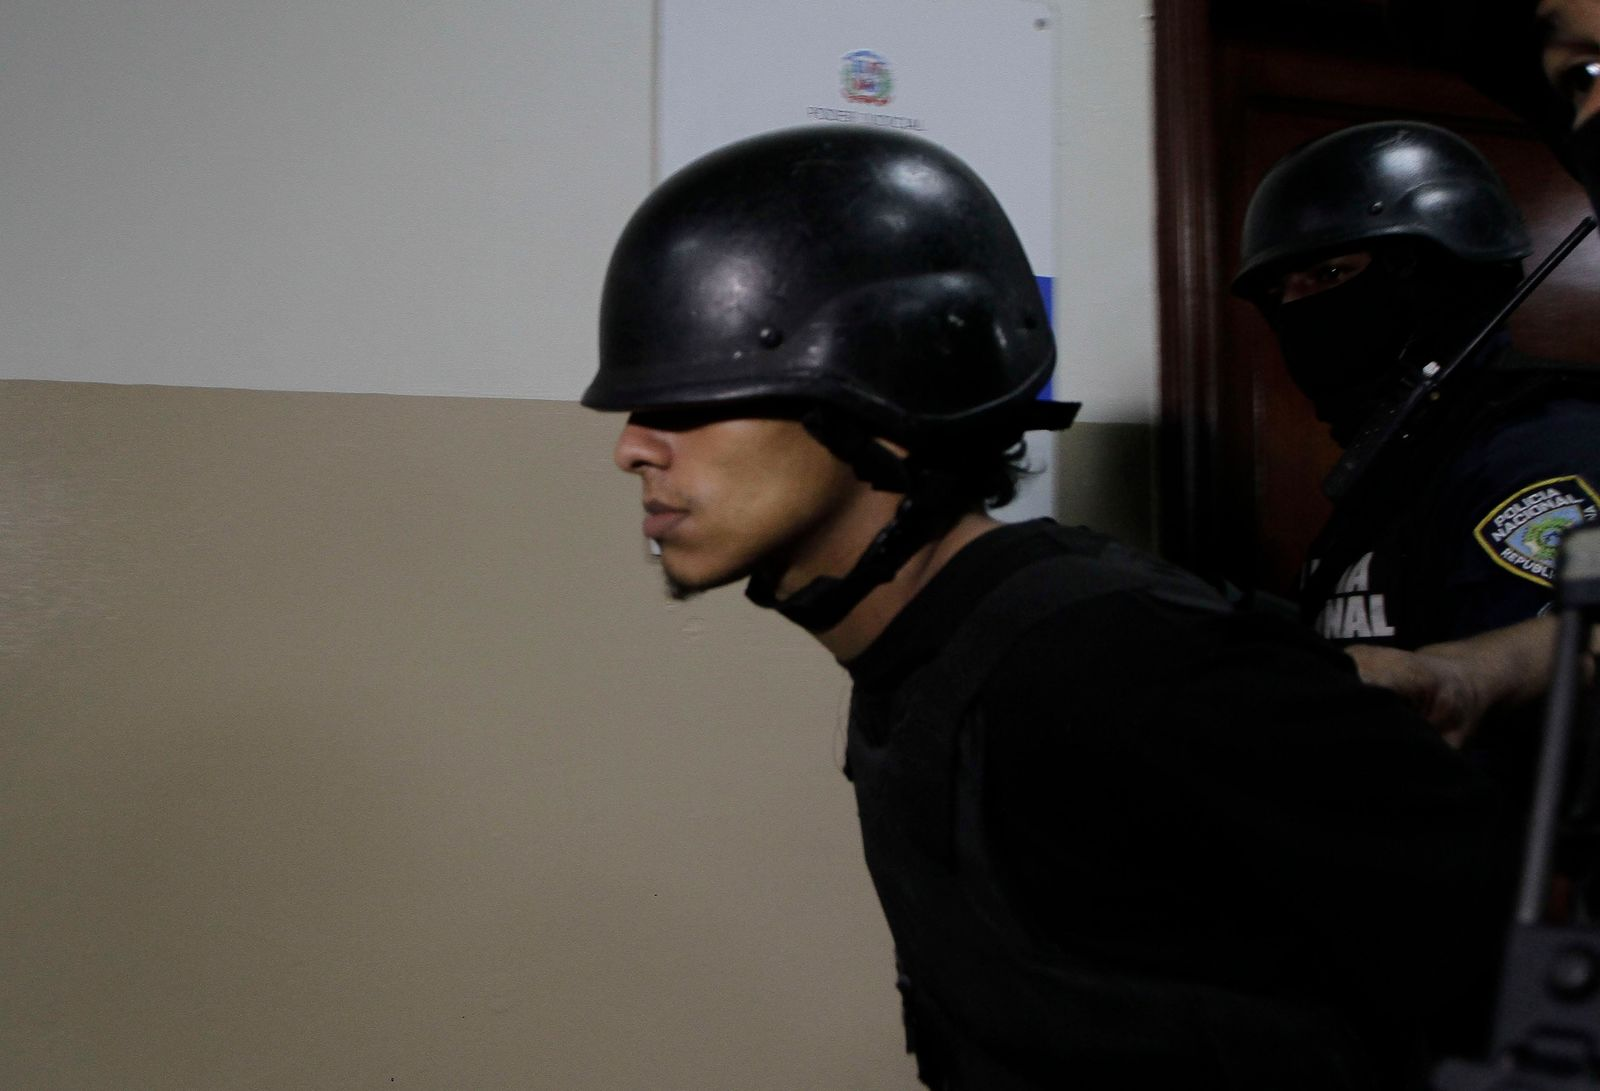 Rolfy Ferreyra Cruz, a suspect in connection with the shooting of former Boston Red Sox slugger David Ortiz, is taken to court by police in Santo Domingo, Dominican Republic, Friday, June 14, 2019.(AP Photo/Roberto Guzman)